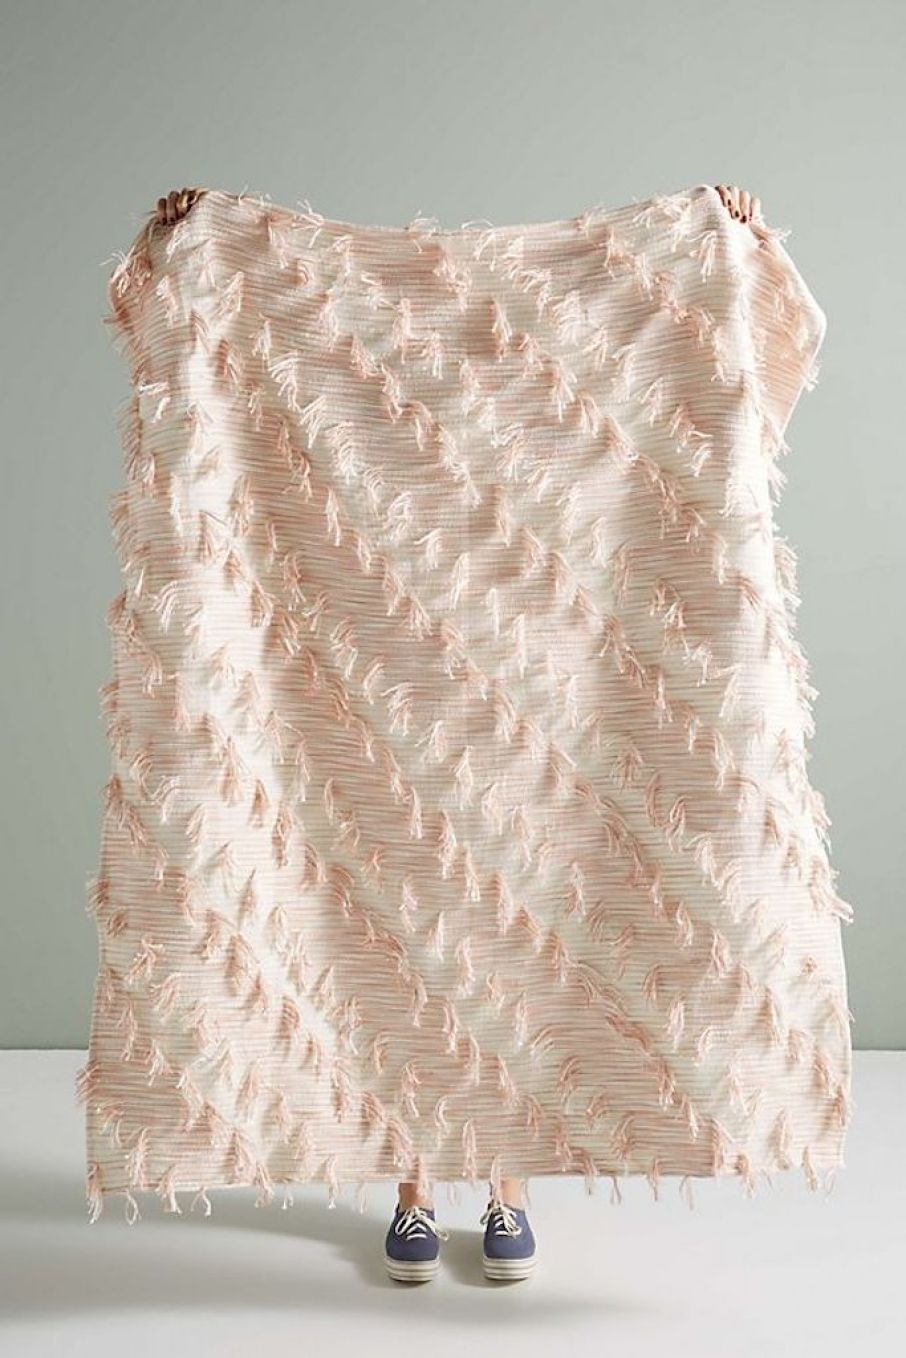 holding Anthropologie throw blanket